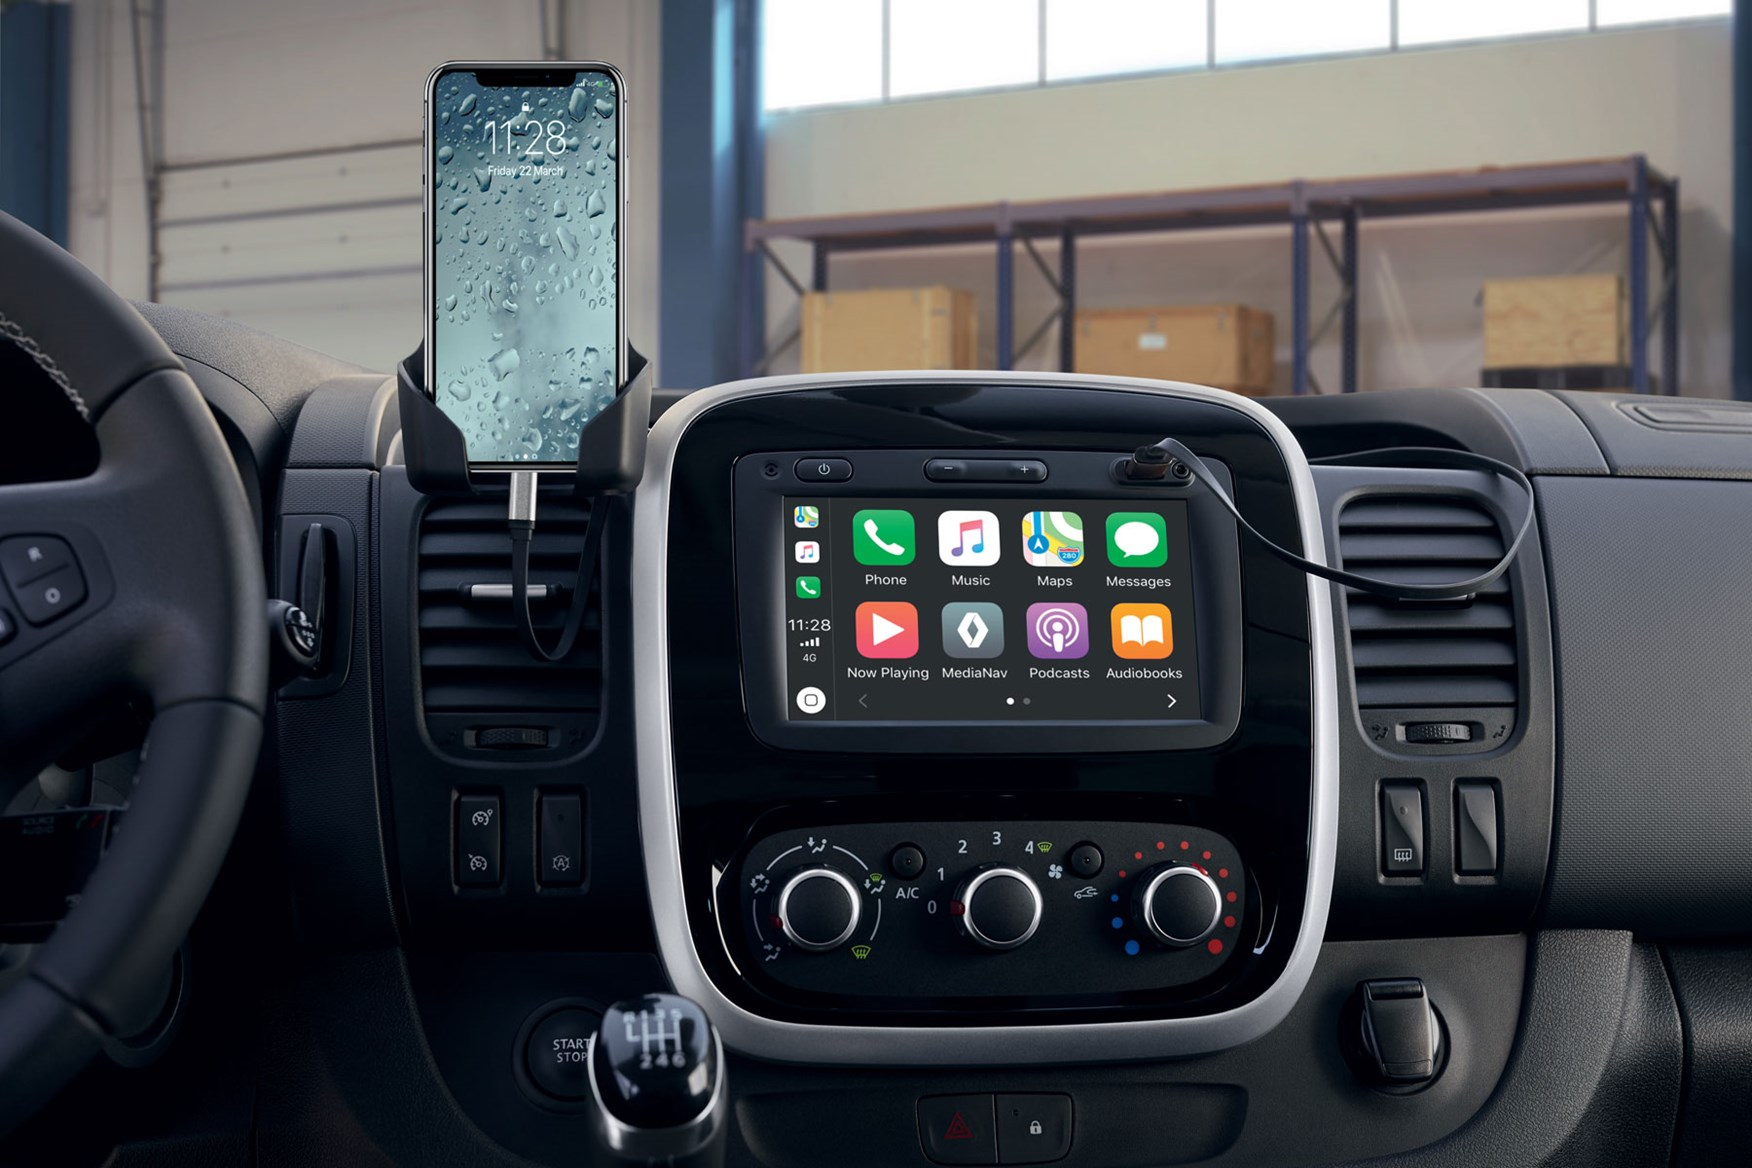 Renault Trafic review - 2019 facelift infotainment systems